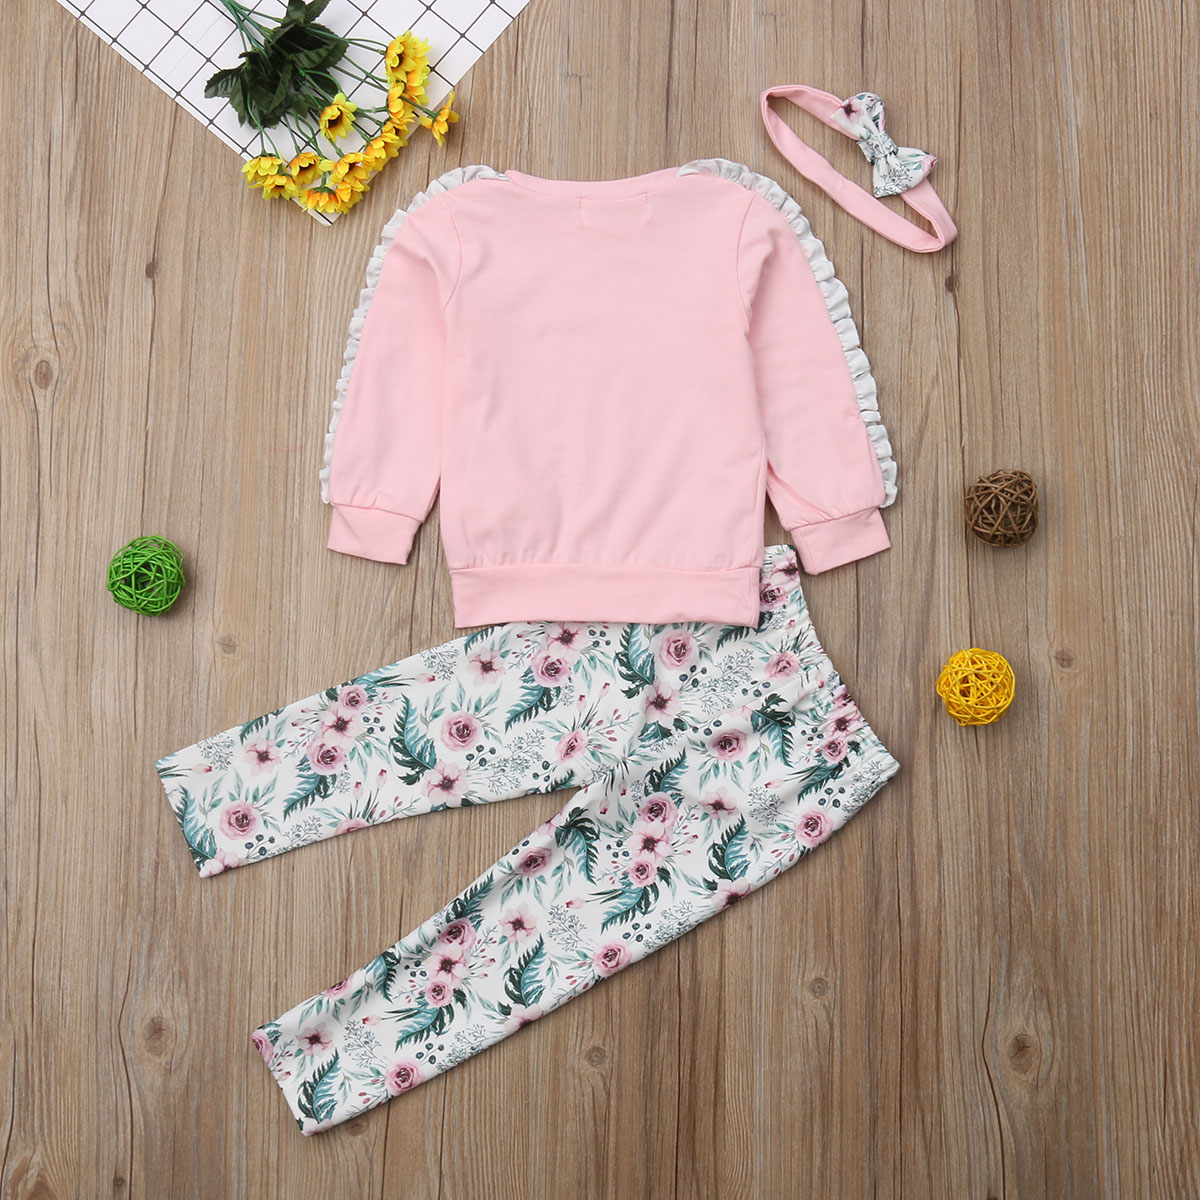 pudcoco  Infant Newborn Baby Girl Floral Long Sleeve T-shirt Top Pant Clothes Outfit baby girl floral autumn winter clothes set